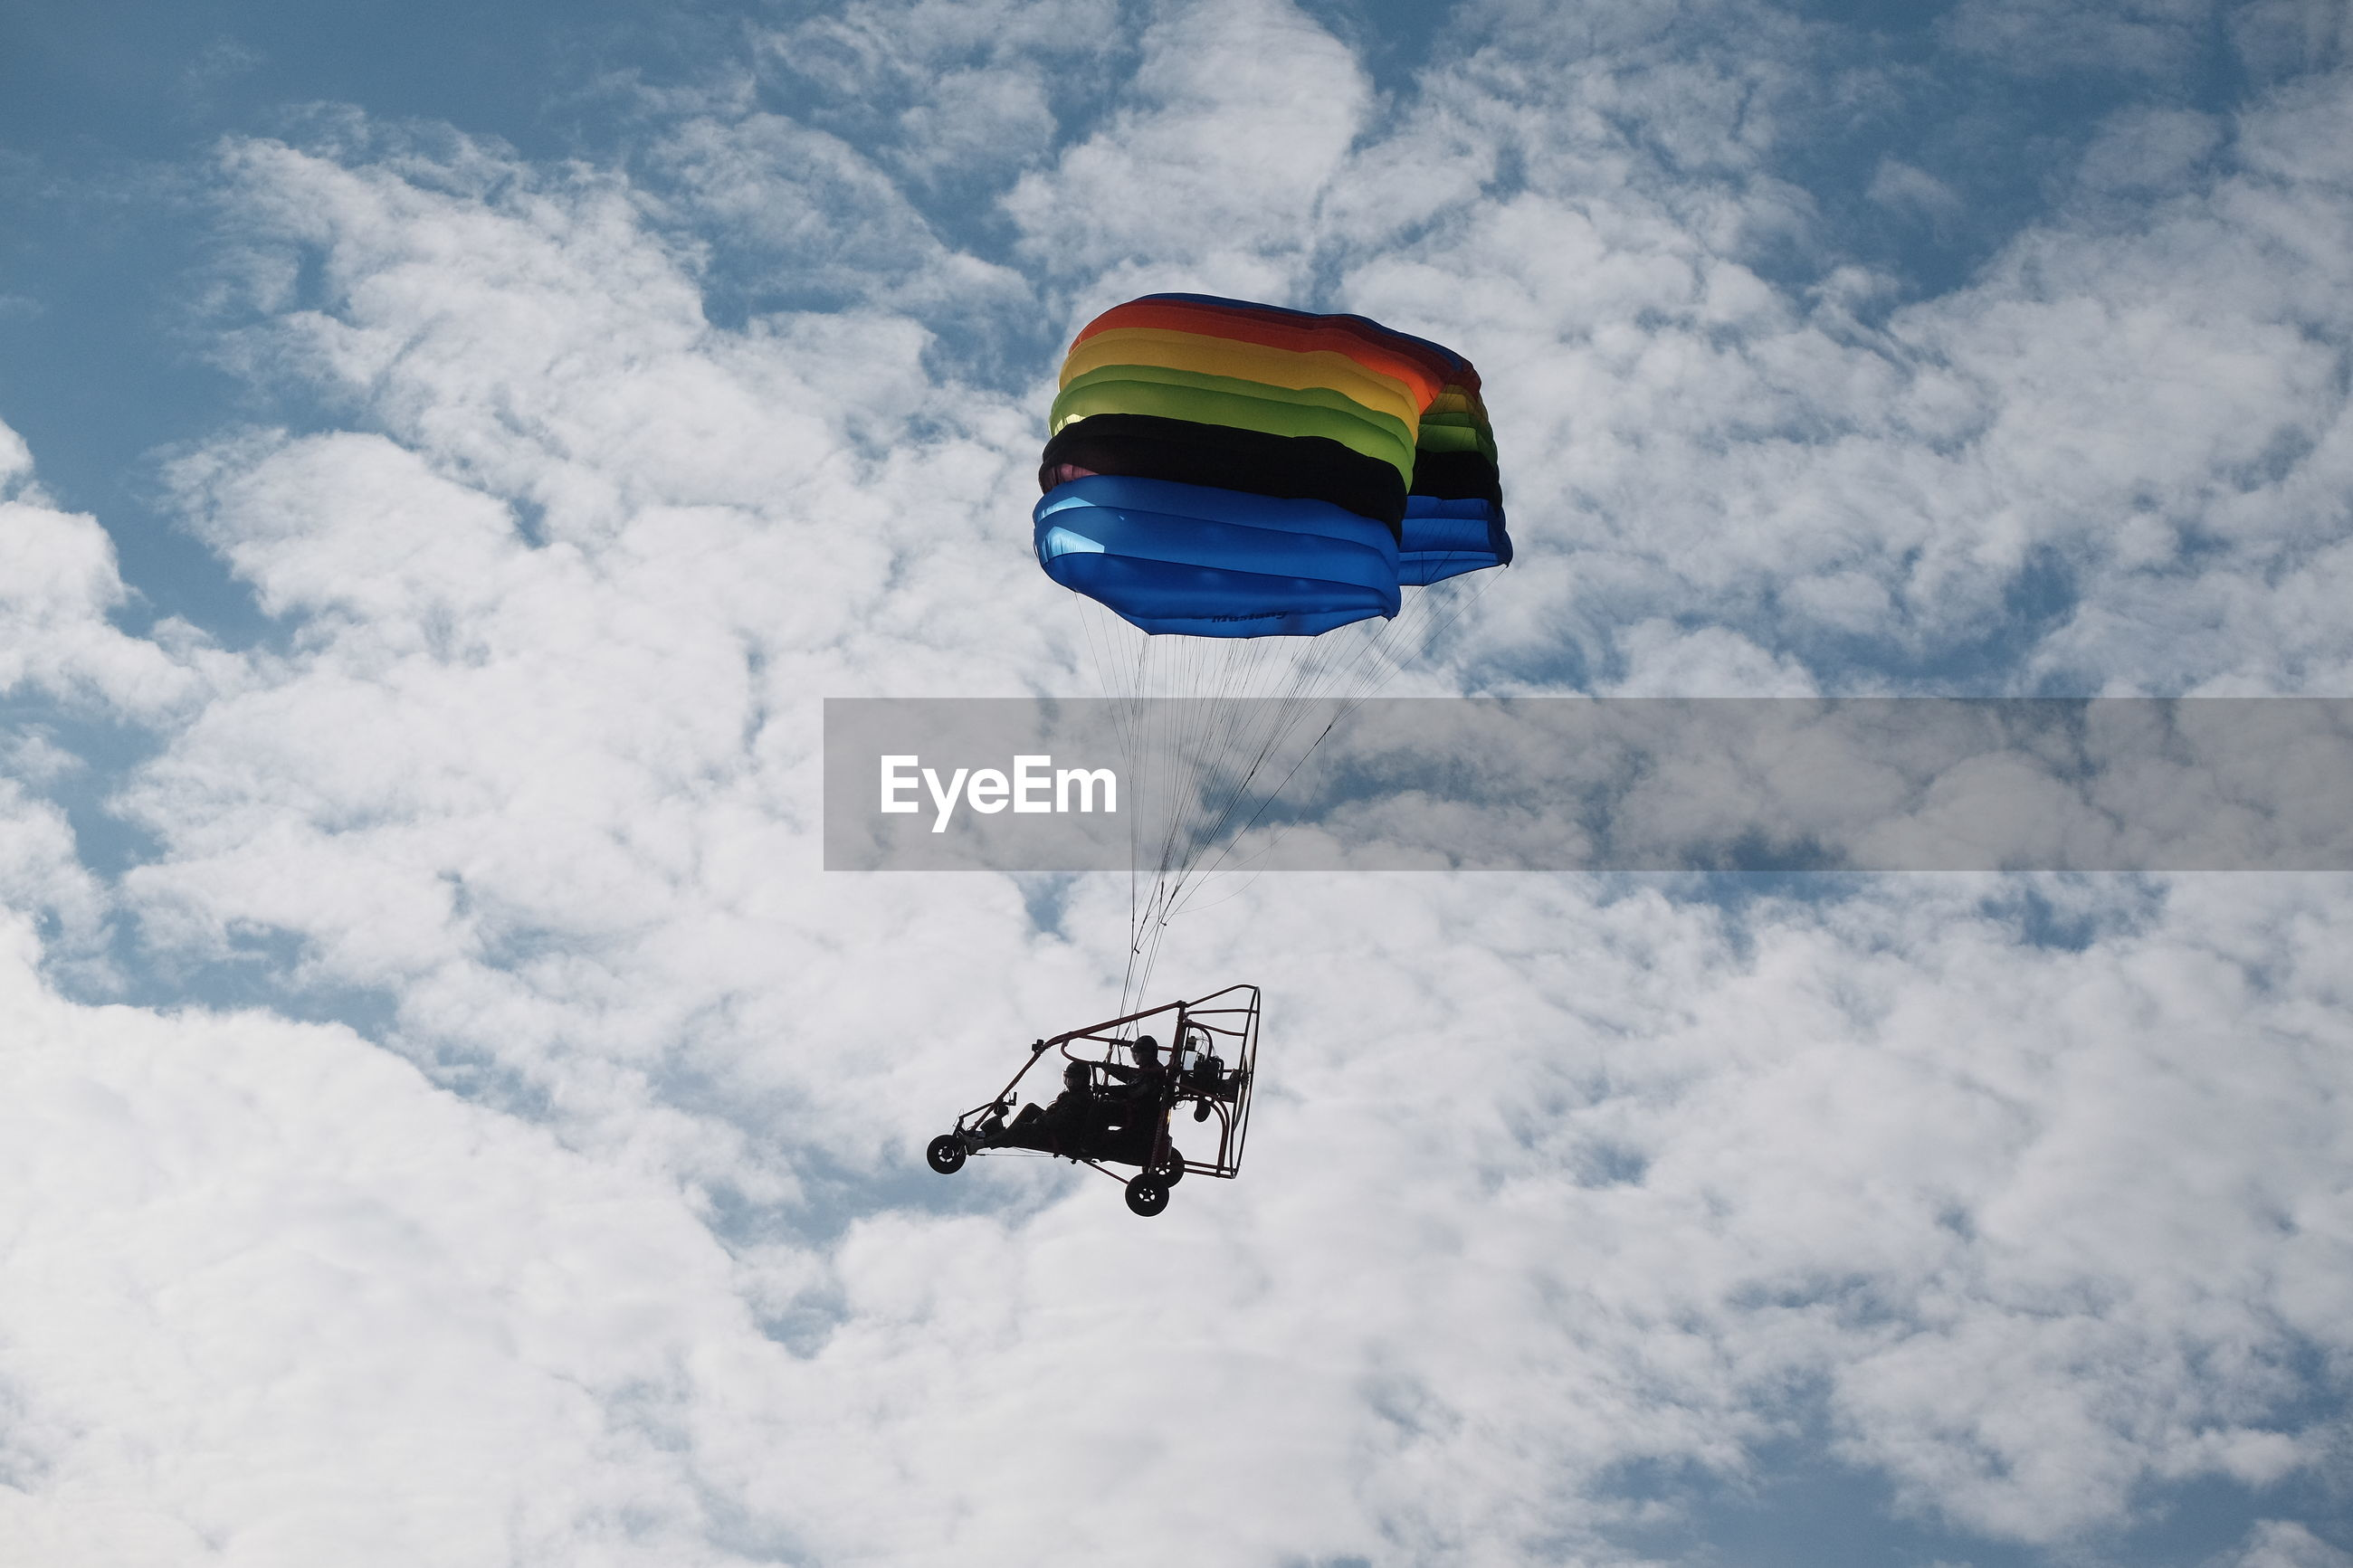 Low angle view of people powered paragliding against cloudy sky